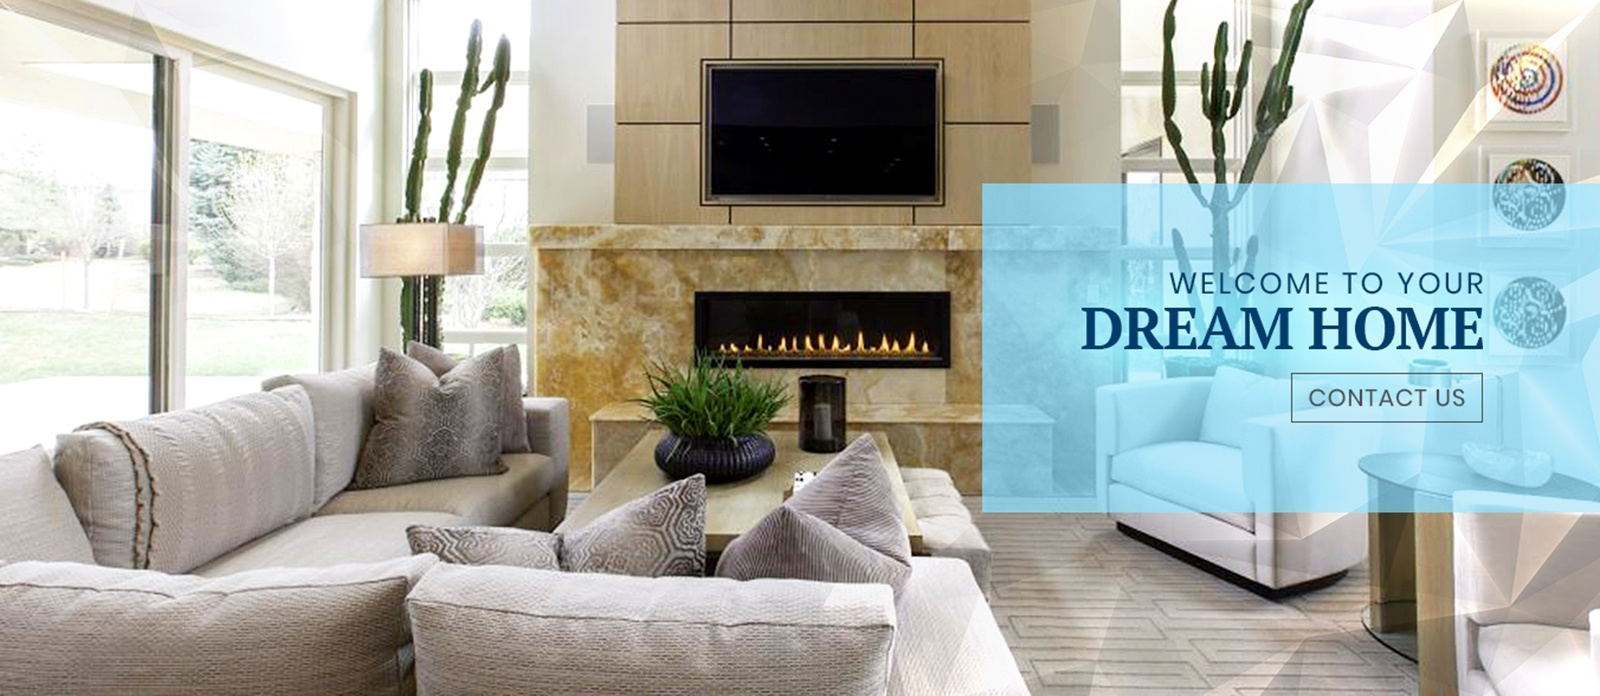 Interior Designer & Decorator in Denver, Colorado